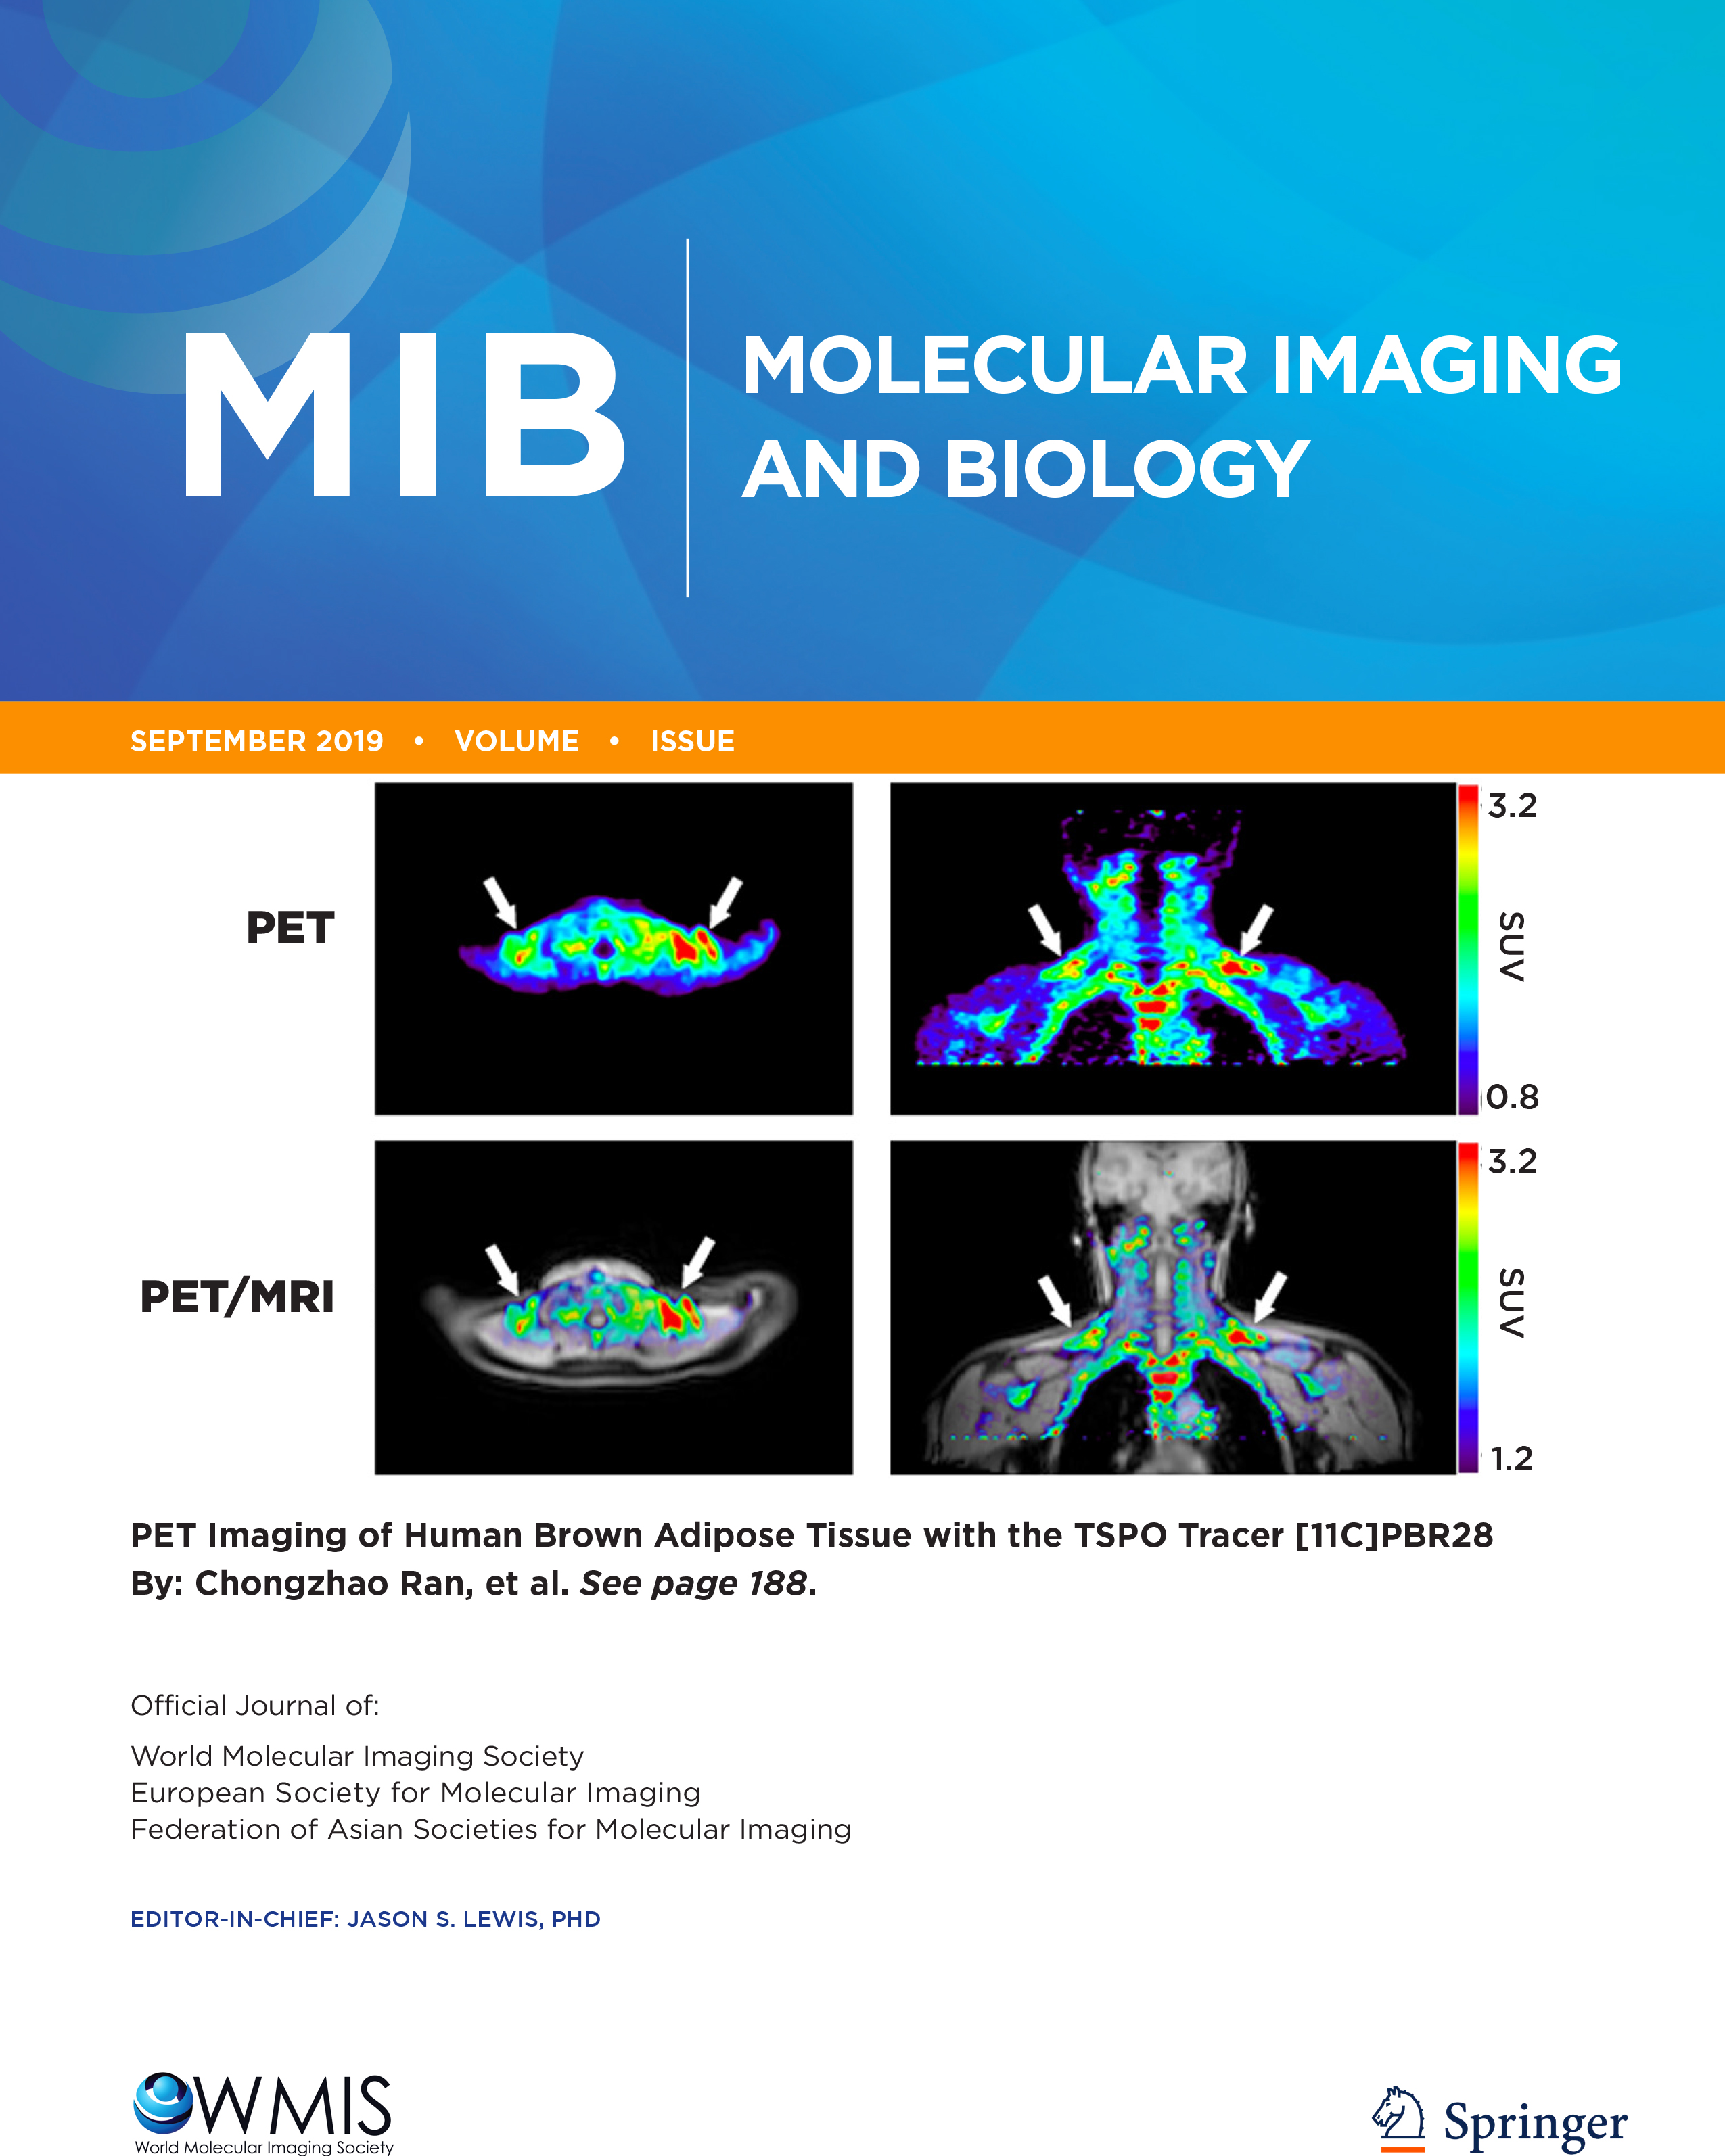 Submit your Science to the Journal of Molecular Imaging and Biology